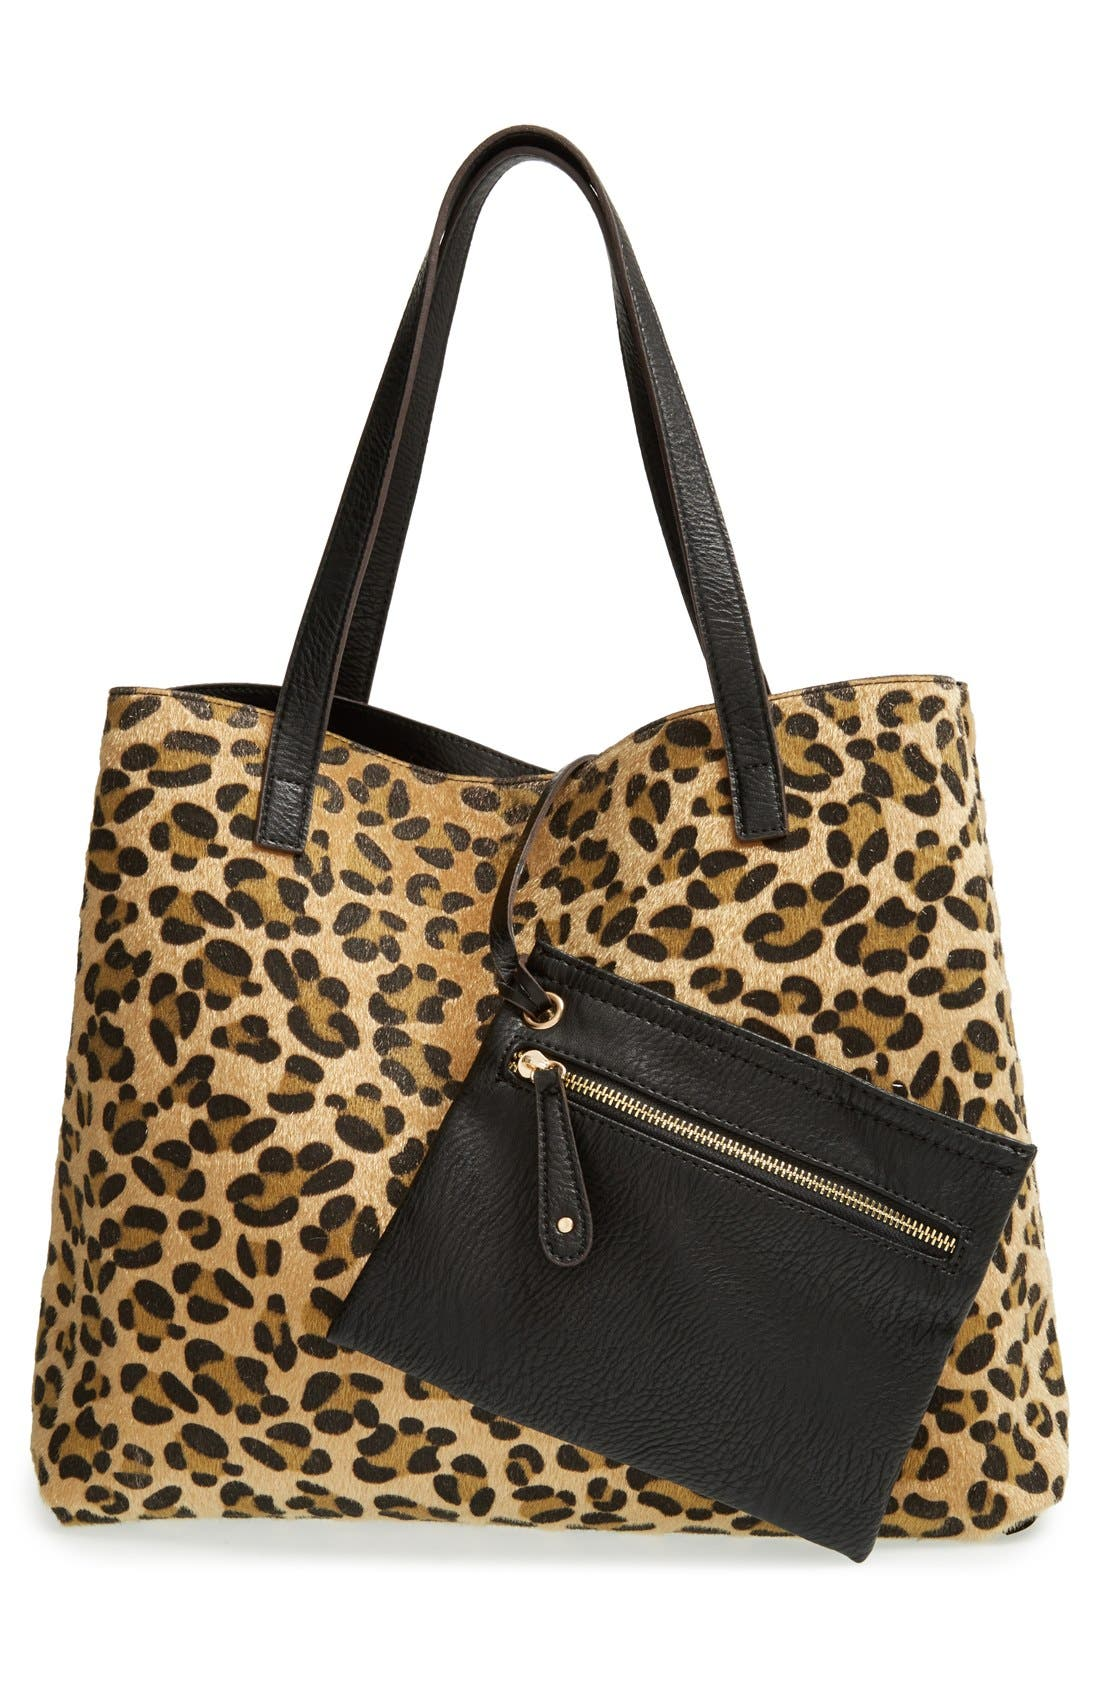 STREET LEVEL, Reversible Faux Leather Tote, Main thumbnail 1, color, 004